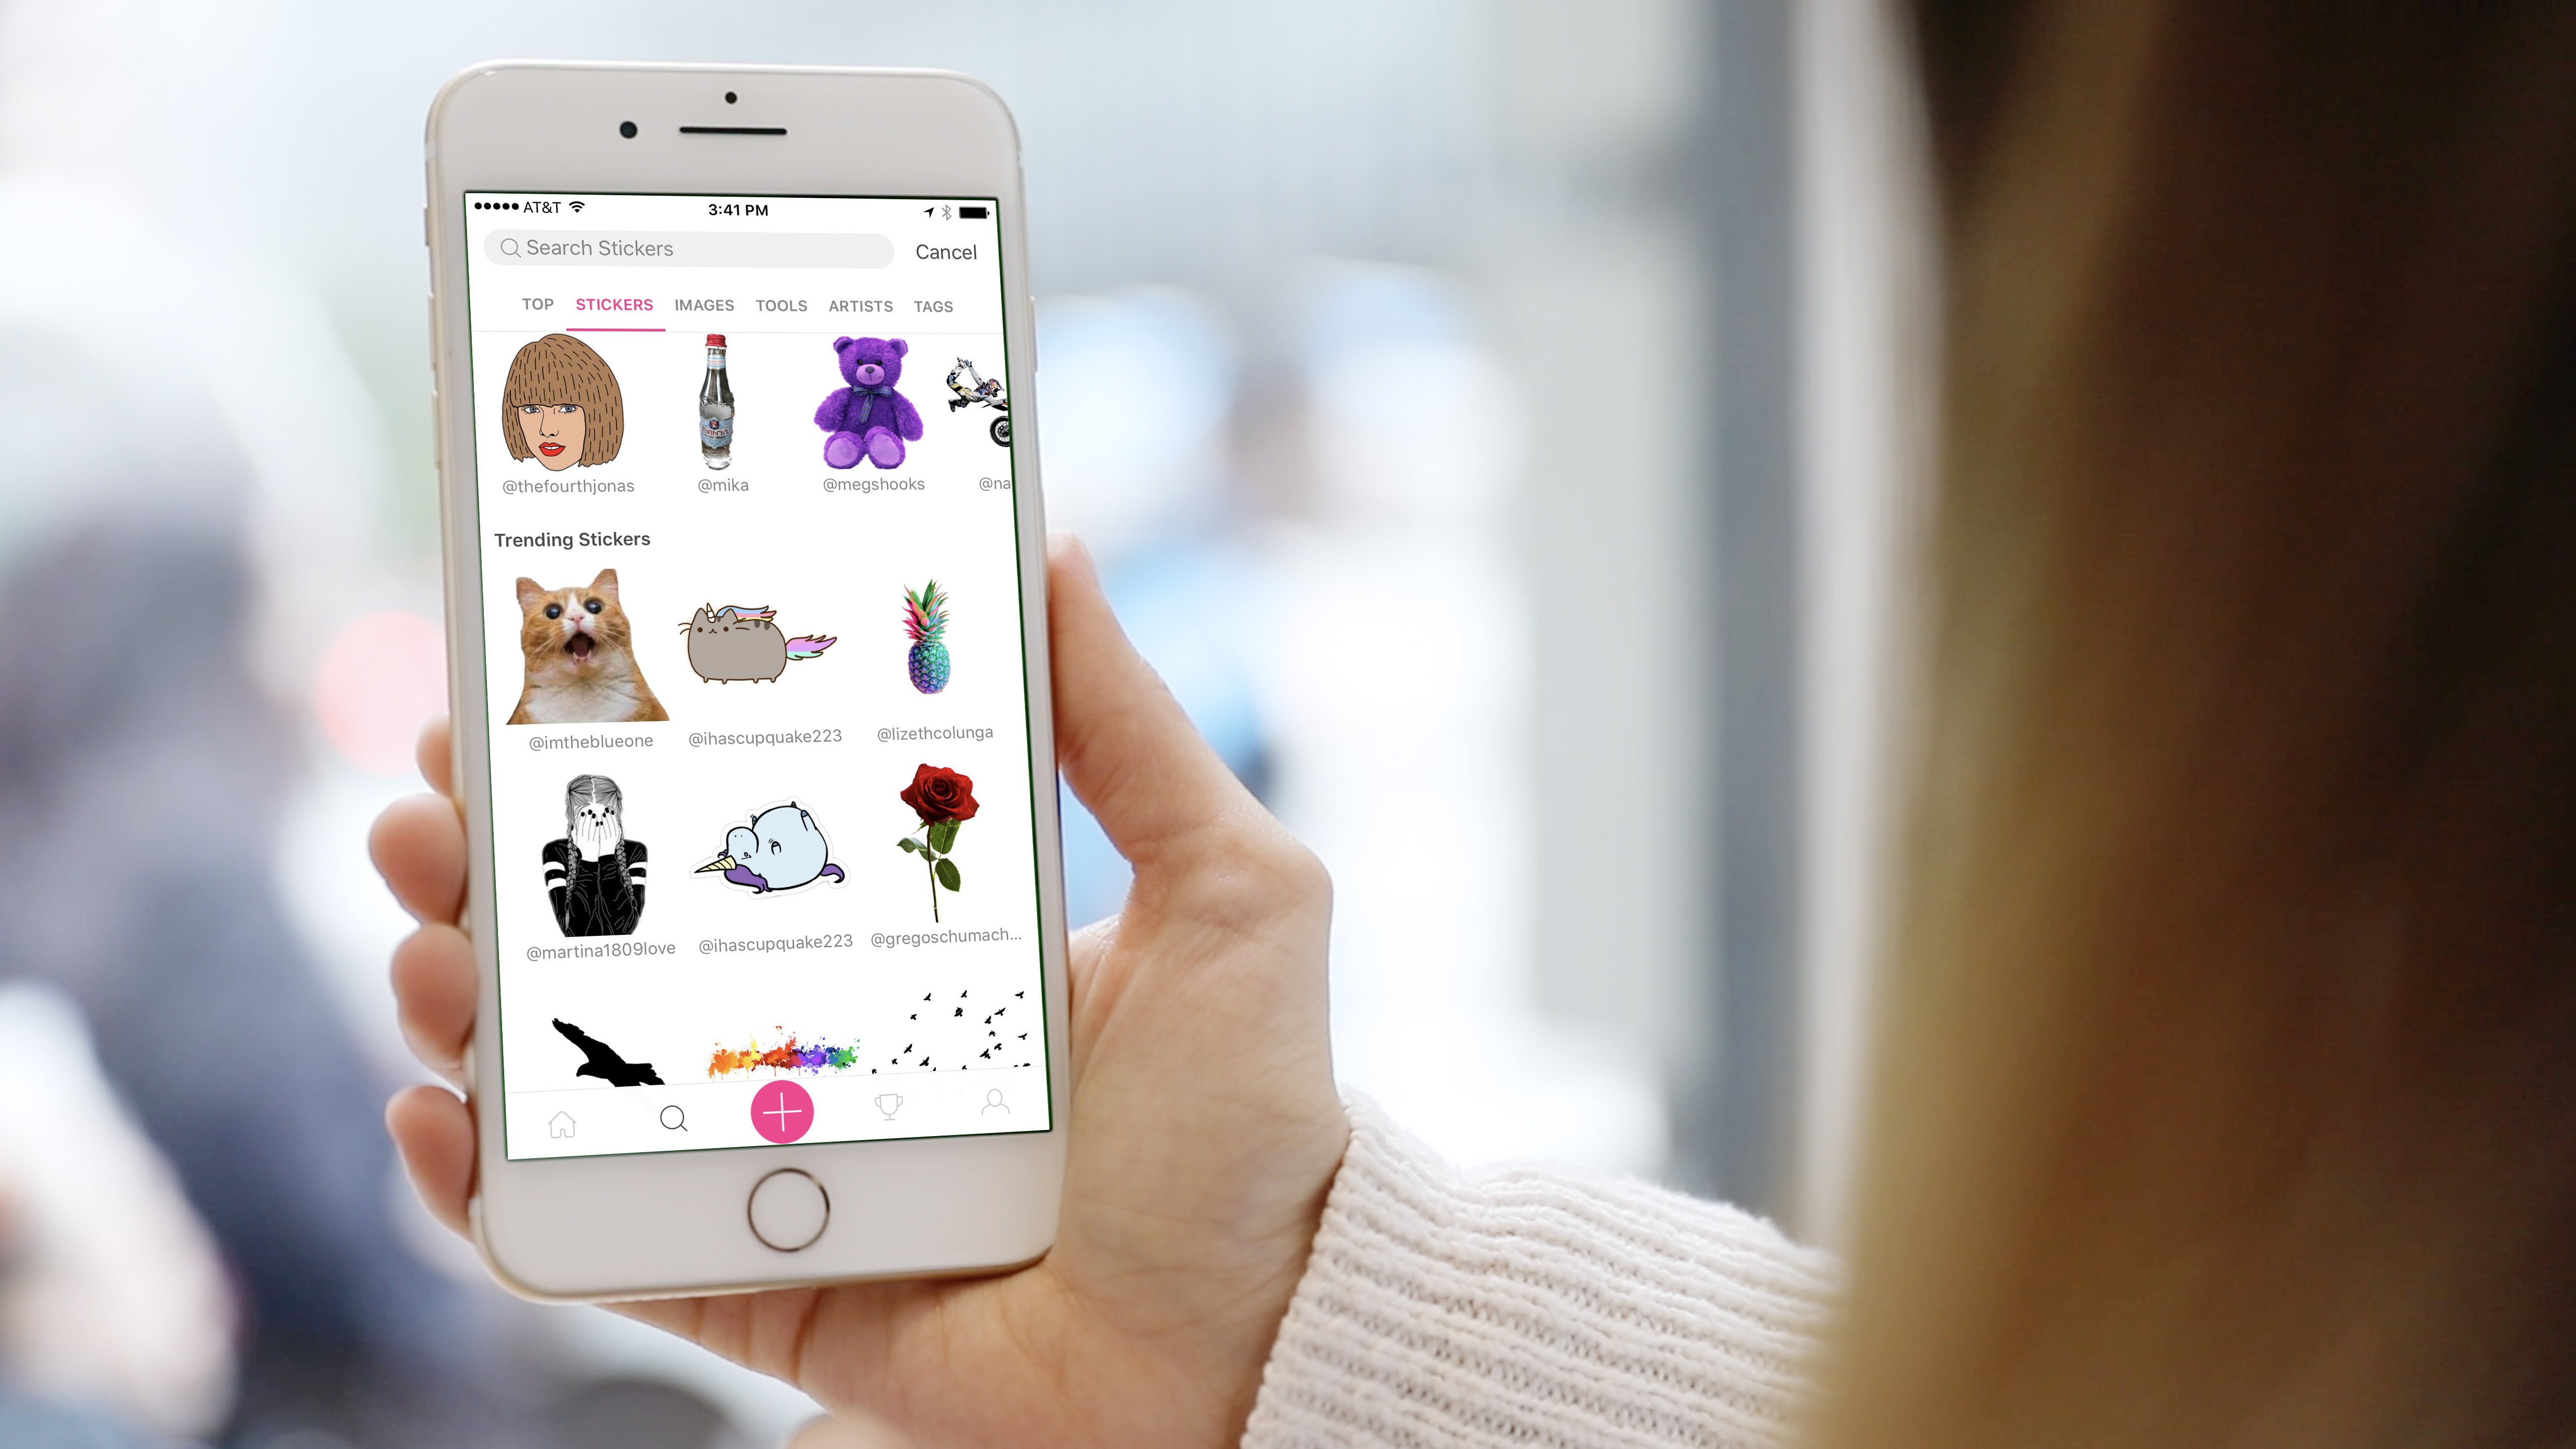 PicsArt has over 1 million free Community Stickers (Photo: Business Wire)